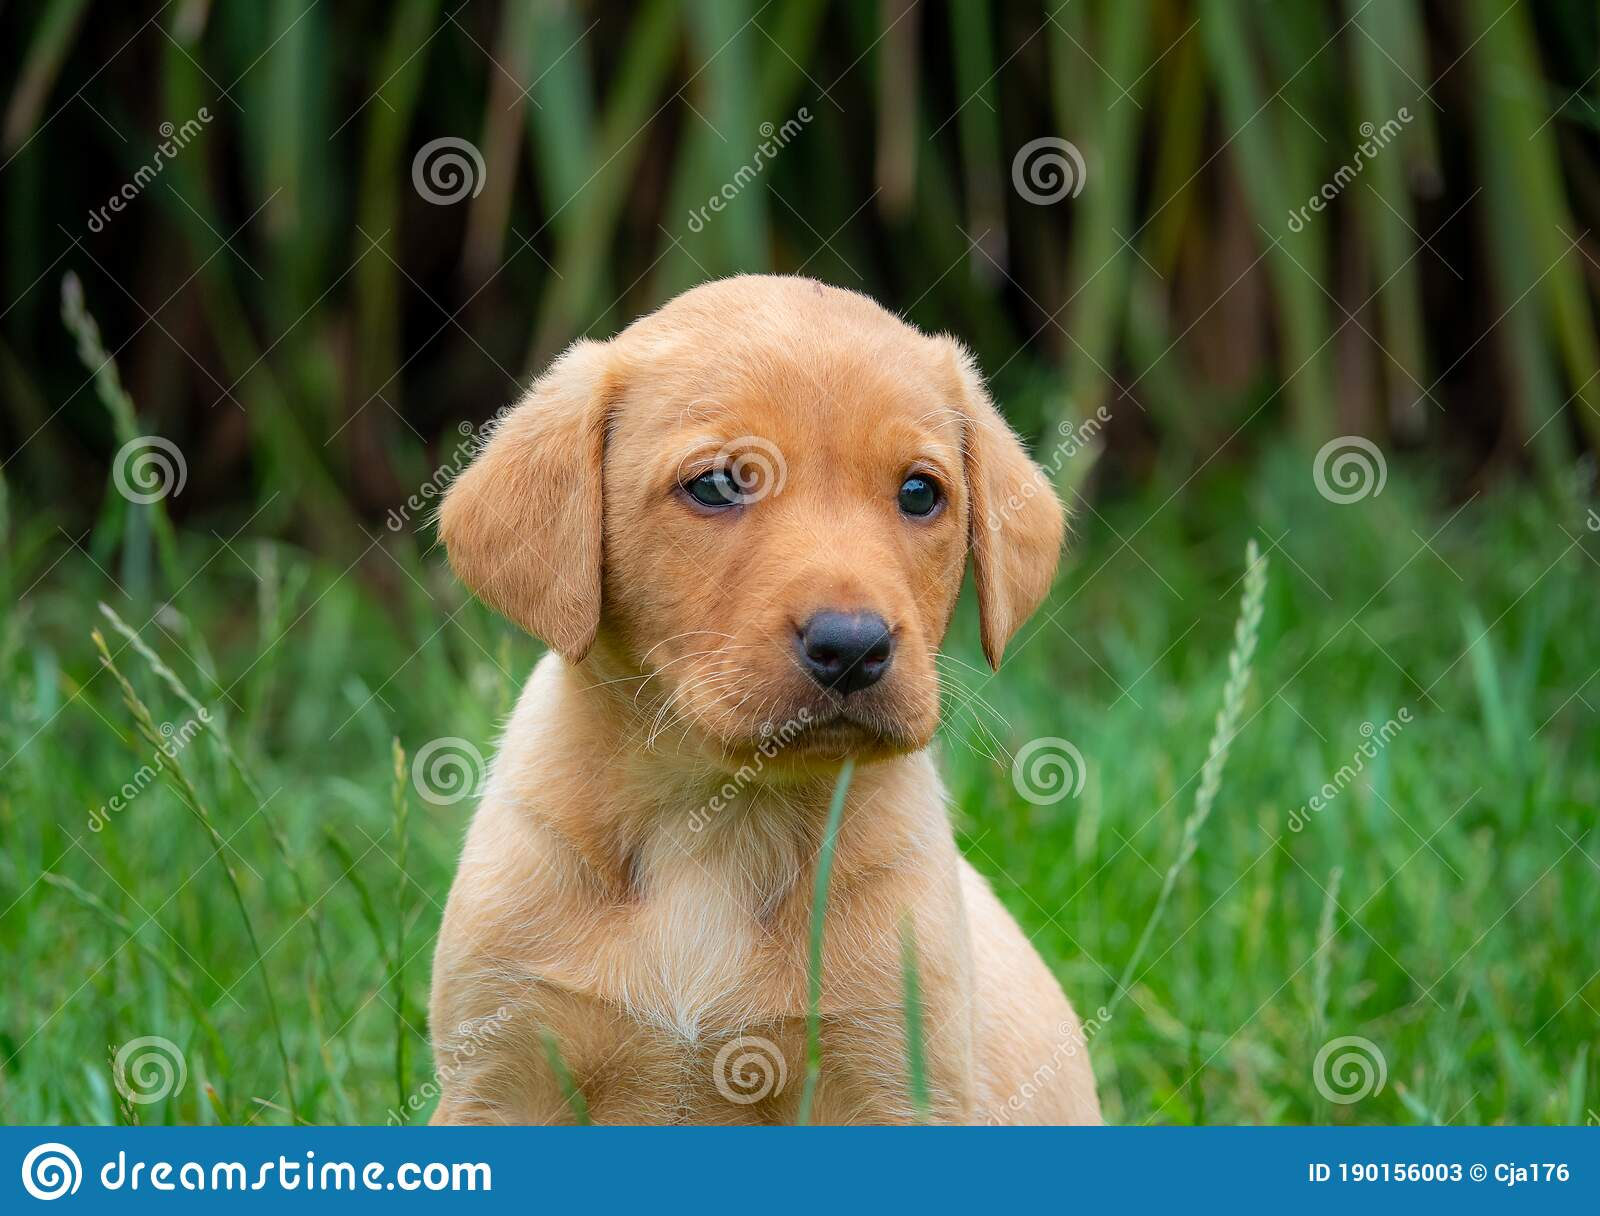 Fox Red Labrador Puppy Looking At The Camera Stock Image Image Of Friend Brown 190156003